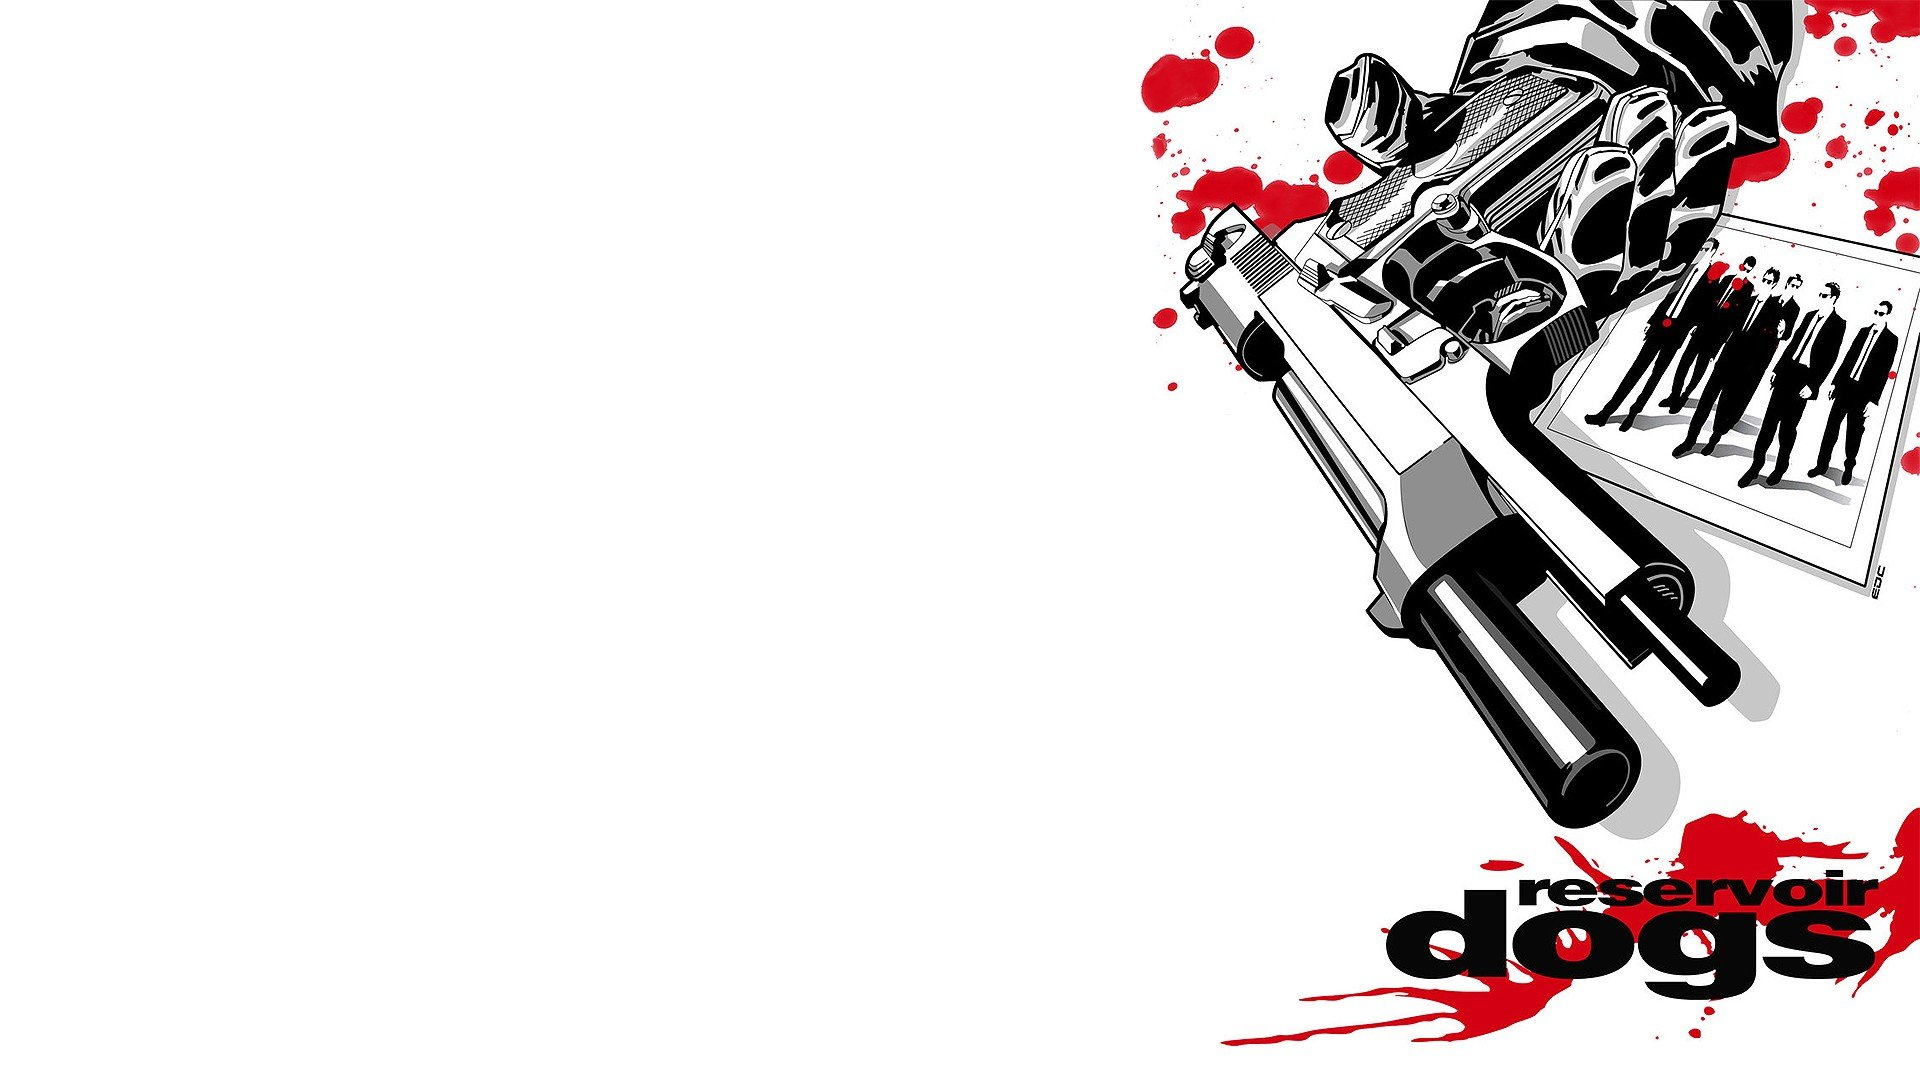 Reservoir Dogs Quentin Tarantino fan art white background wallpaper